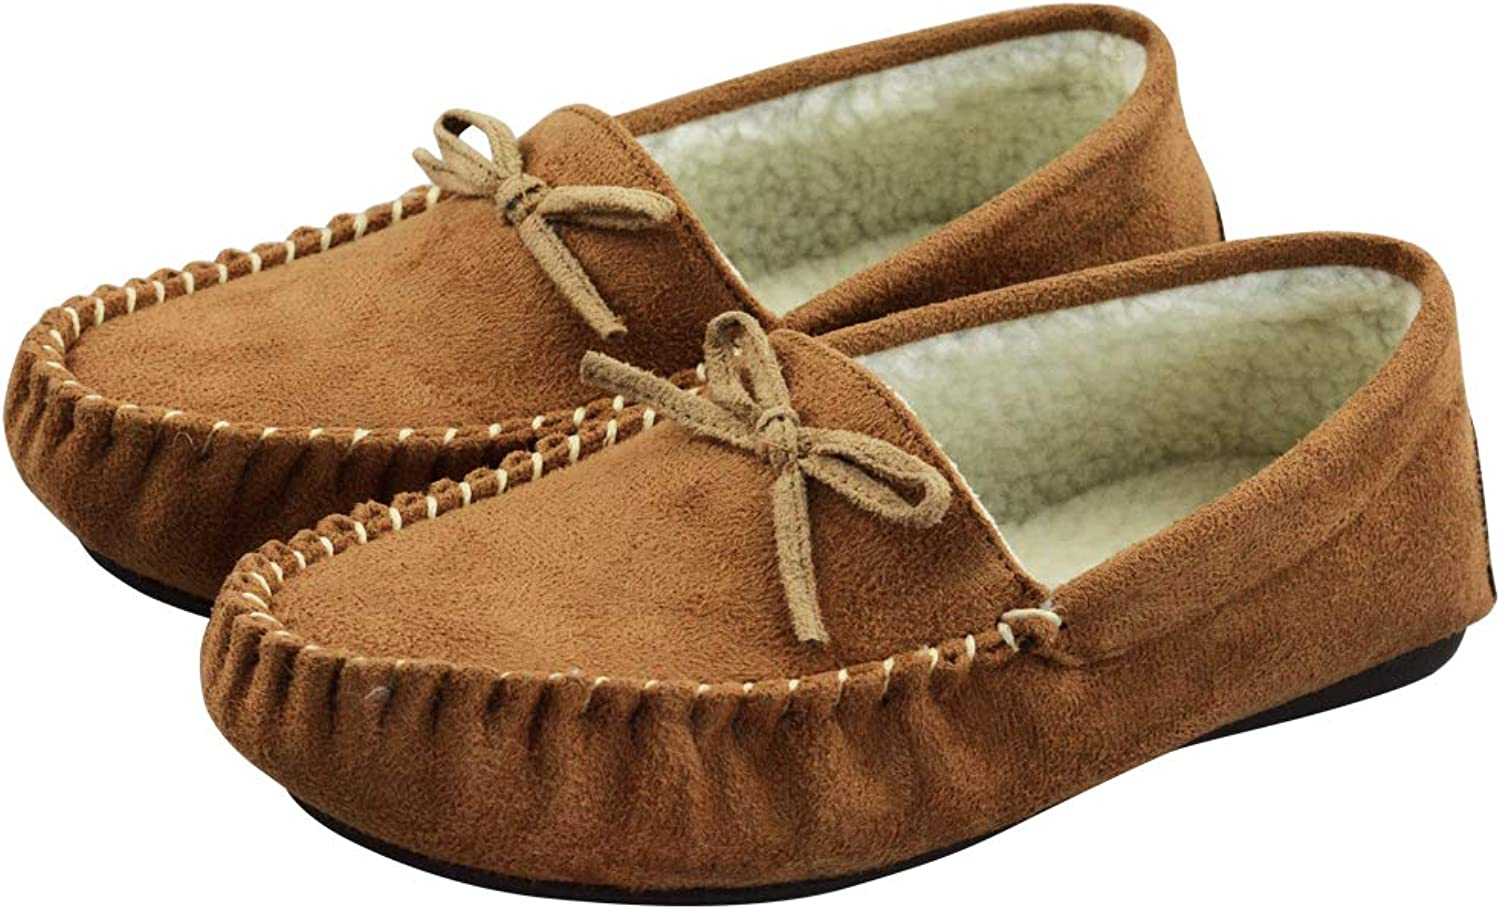 VLLY Women's Faux Fur Lining Soft Comfort Anti-Slip Rubber Sole Indoor Outdoor Slippers